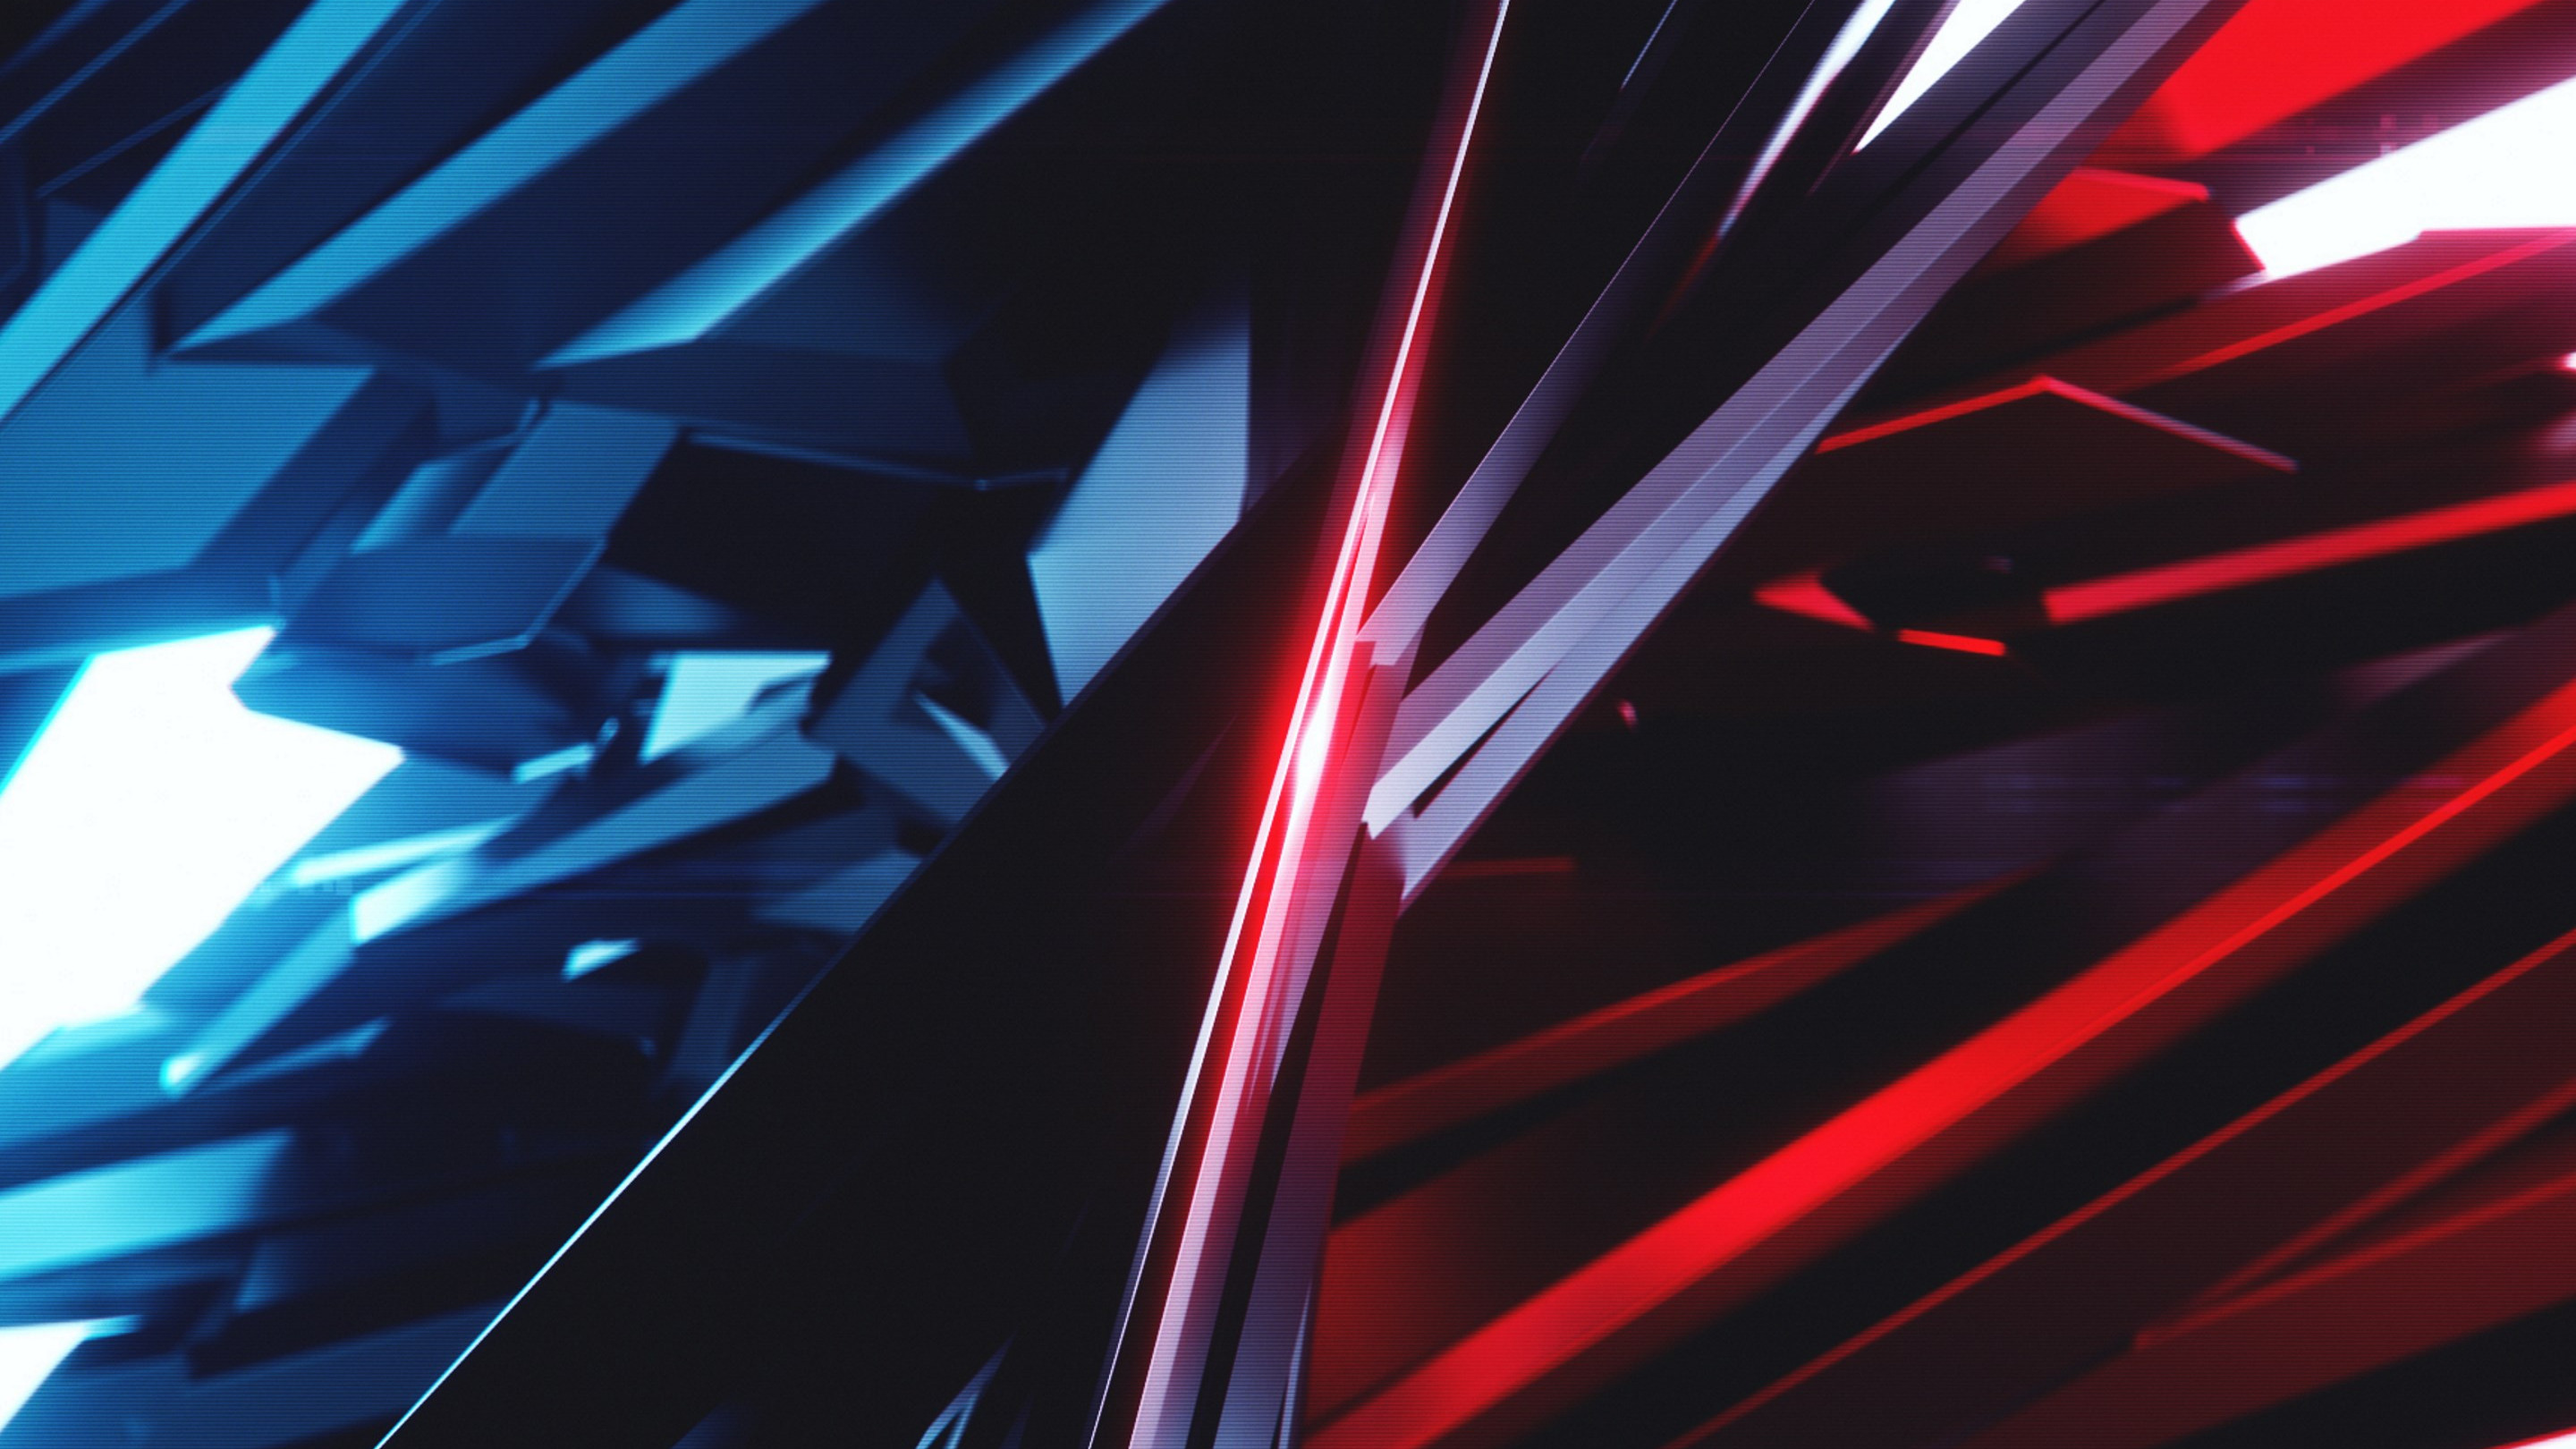 Abstract 3D: Blue vs Red wallpaper 2880x1620